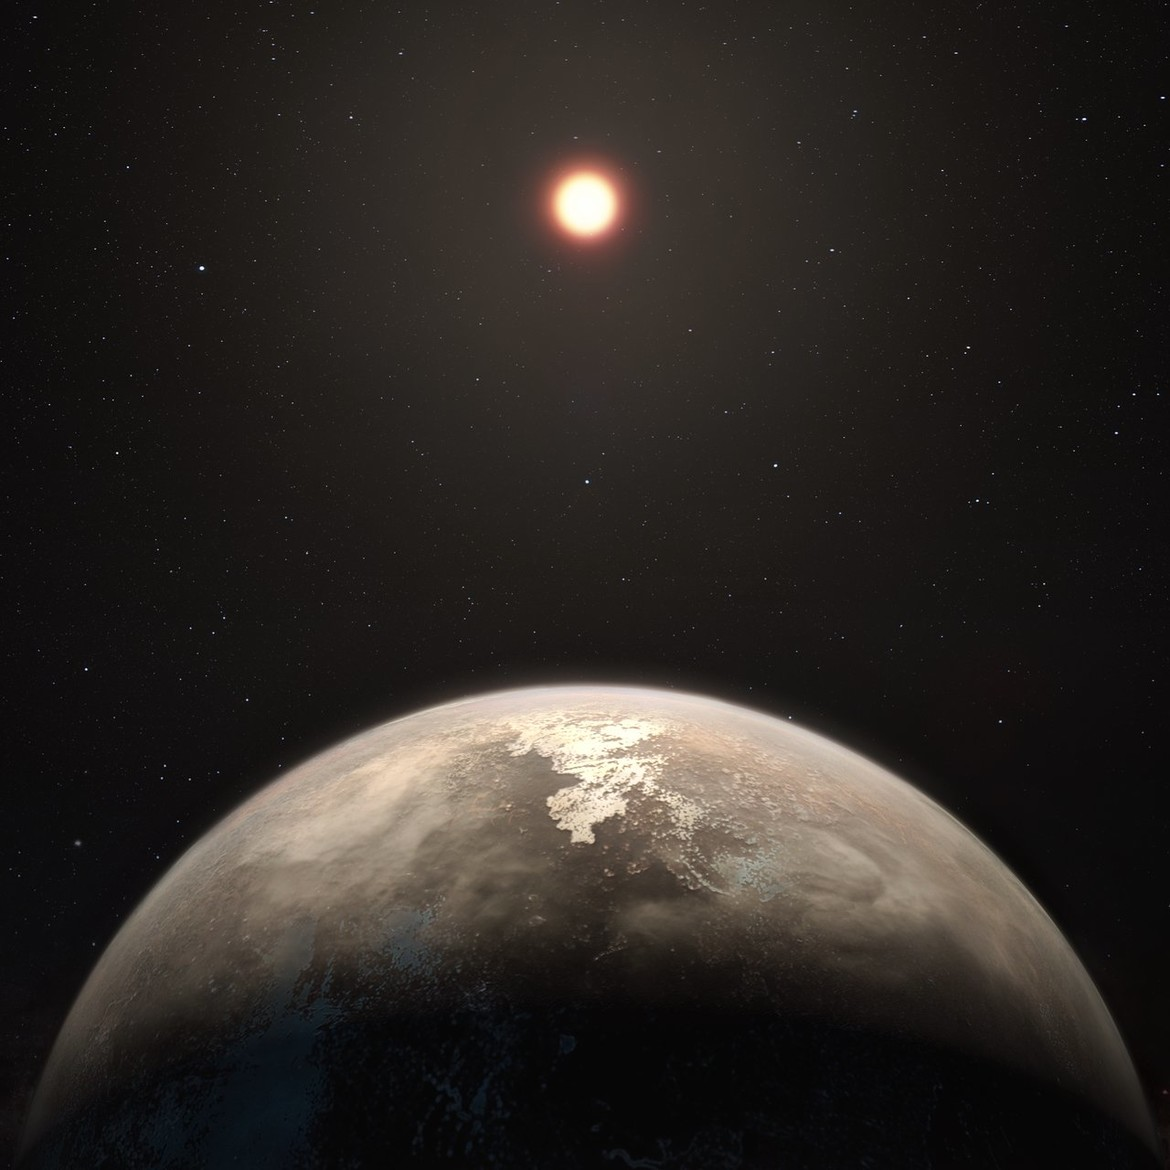 Artwork depicting Ross 128 and its planet. Credit: ESO/ M. Kornmesser